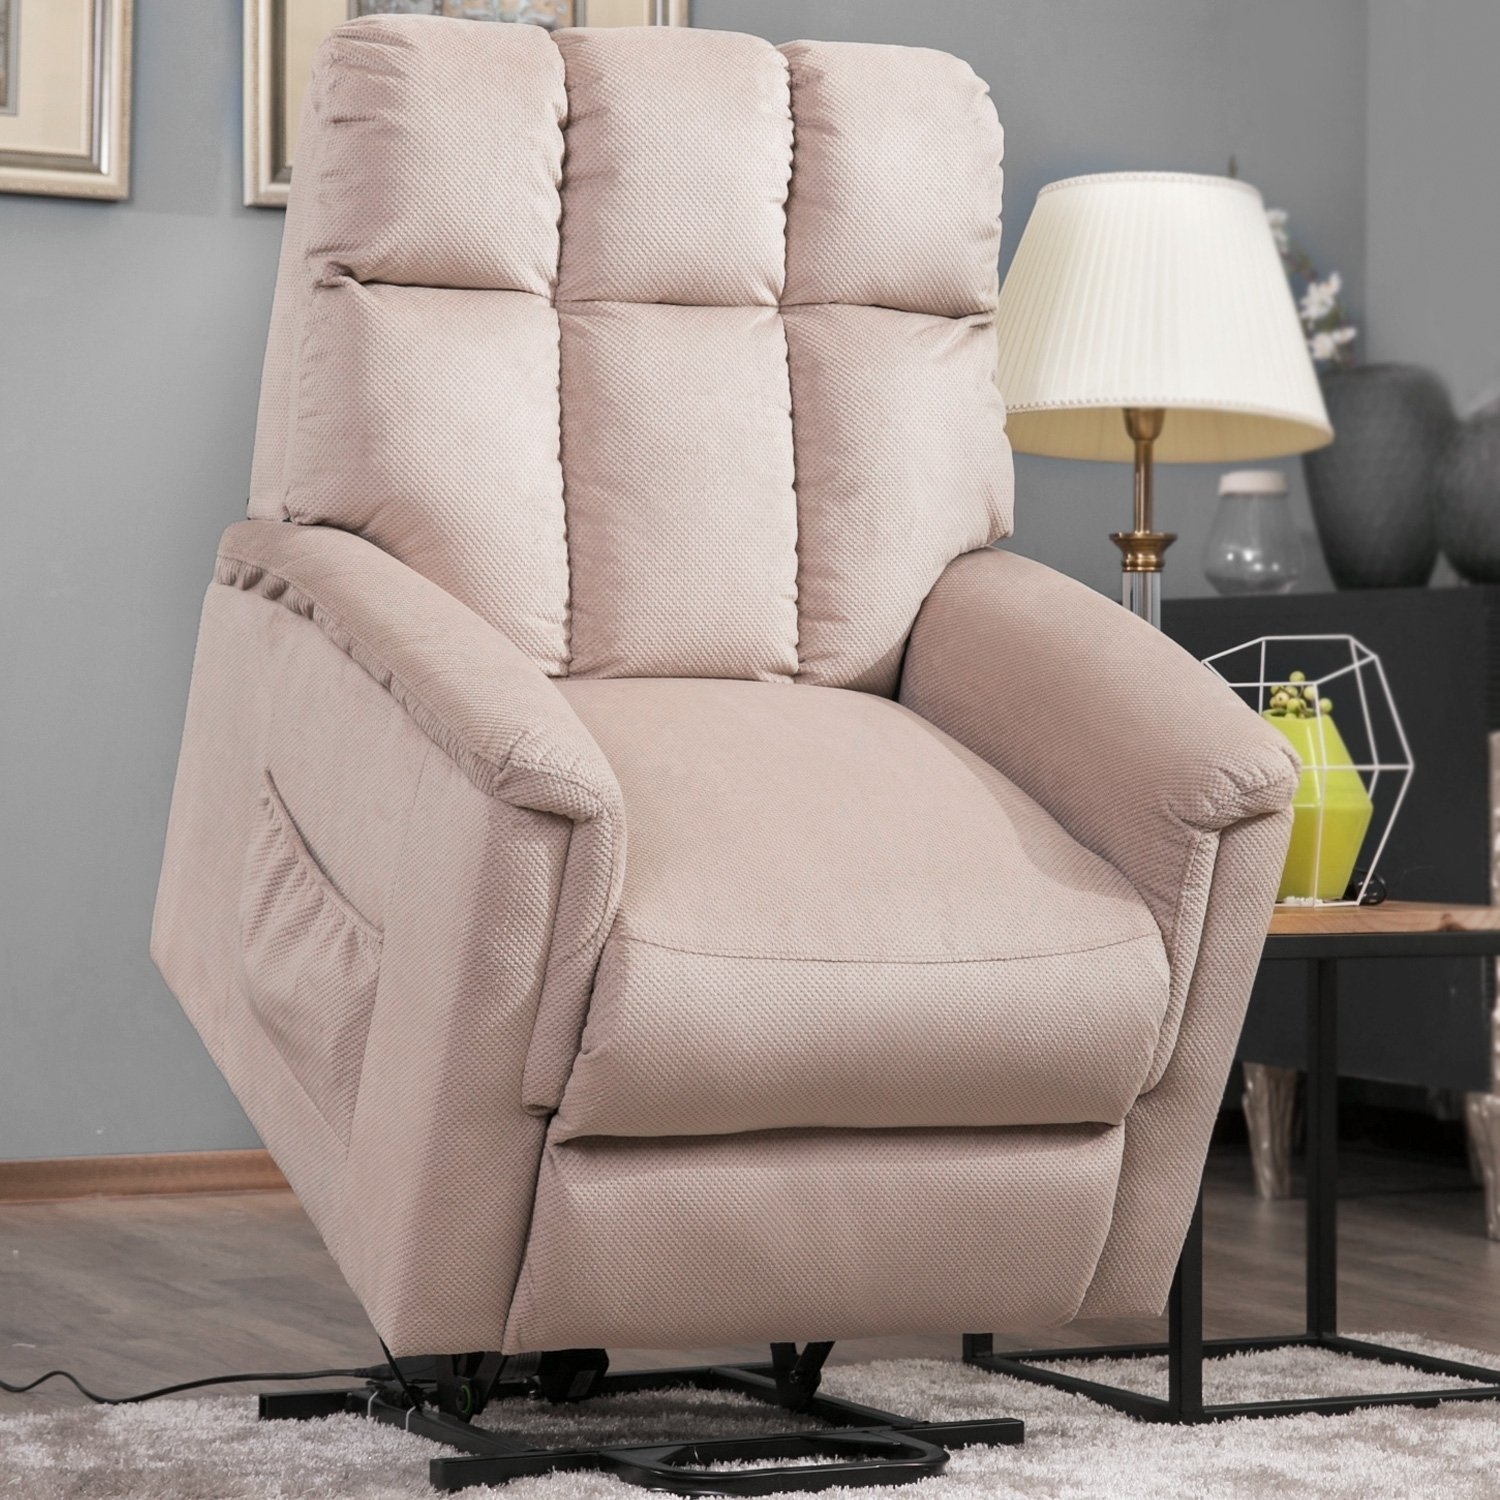 Shop Harper & Bright Designs Power Lift Chair Soft Fabric Recliner Regarding Harper Down Oversized Sofa Chairs (Image 16 of 20)